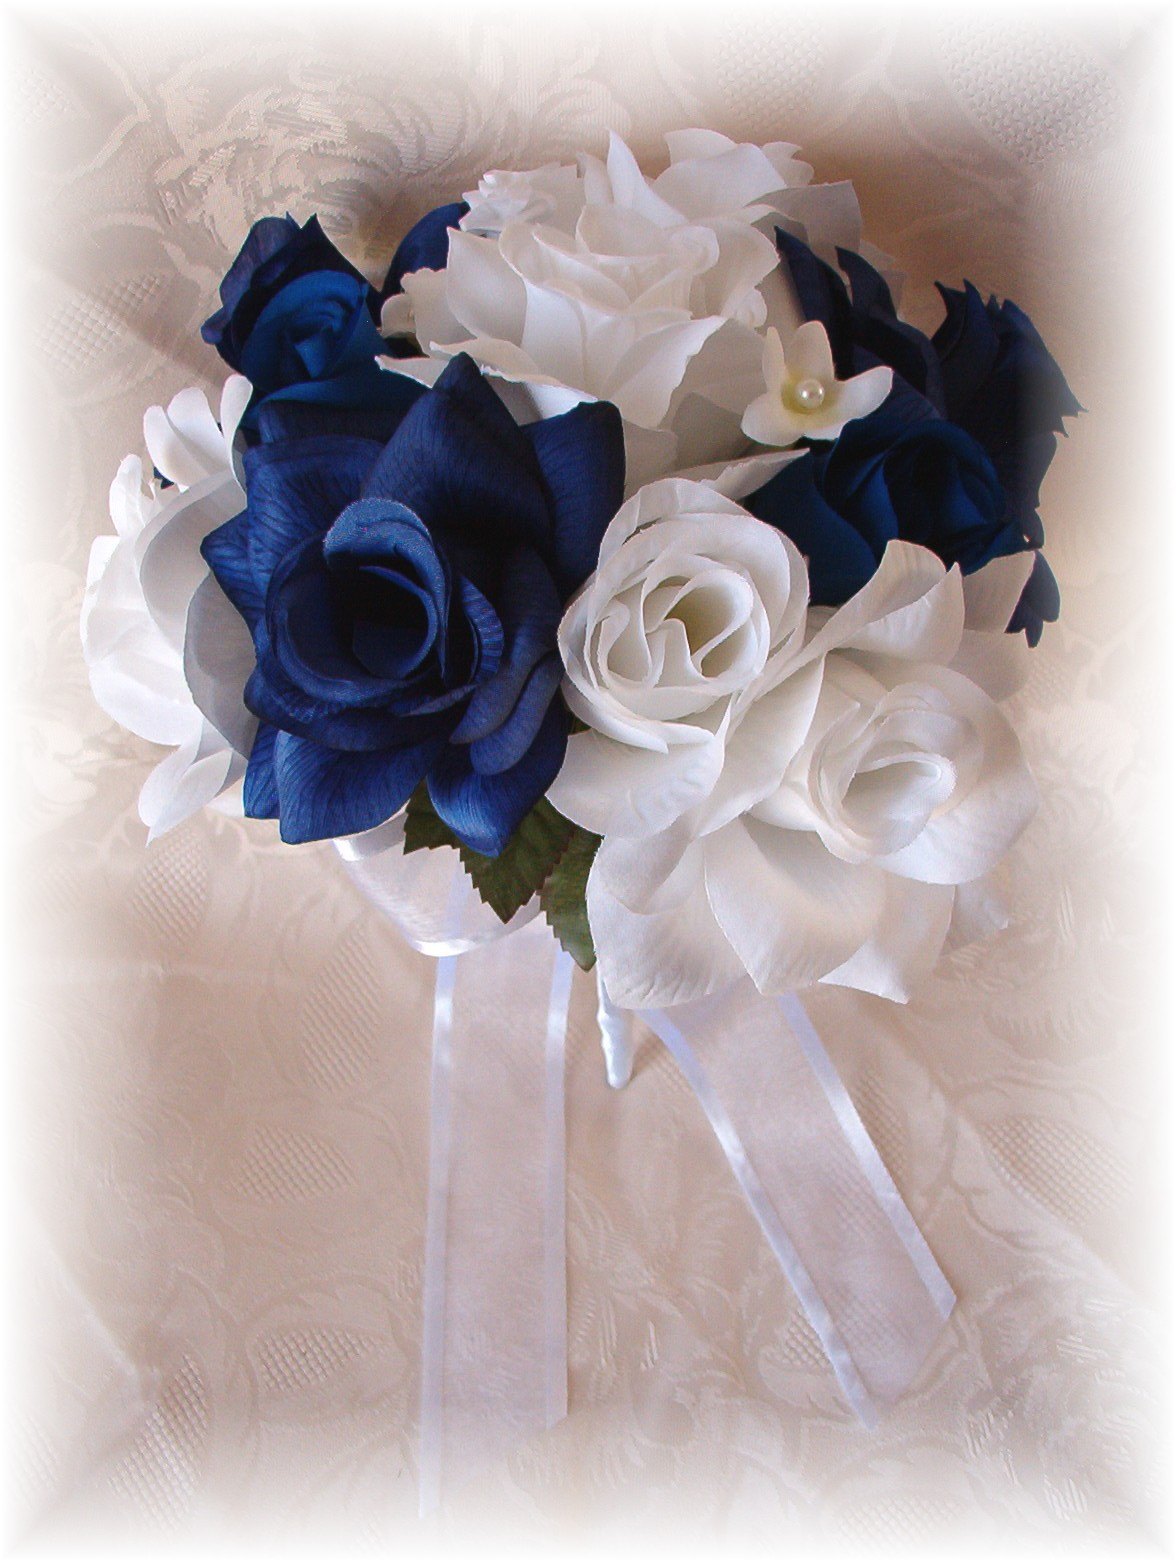 Beautiful white and blue wedding flowers gallery styles ideas silk wedding flowers silk bridal bouquets blue orchid white izmirmasajfo